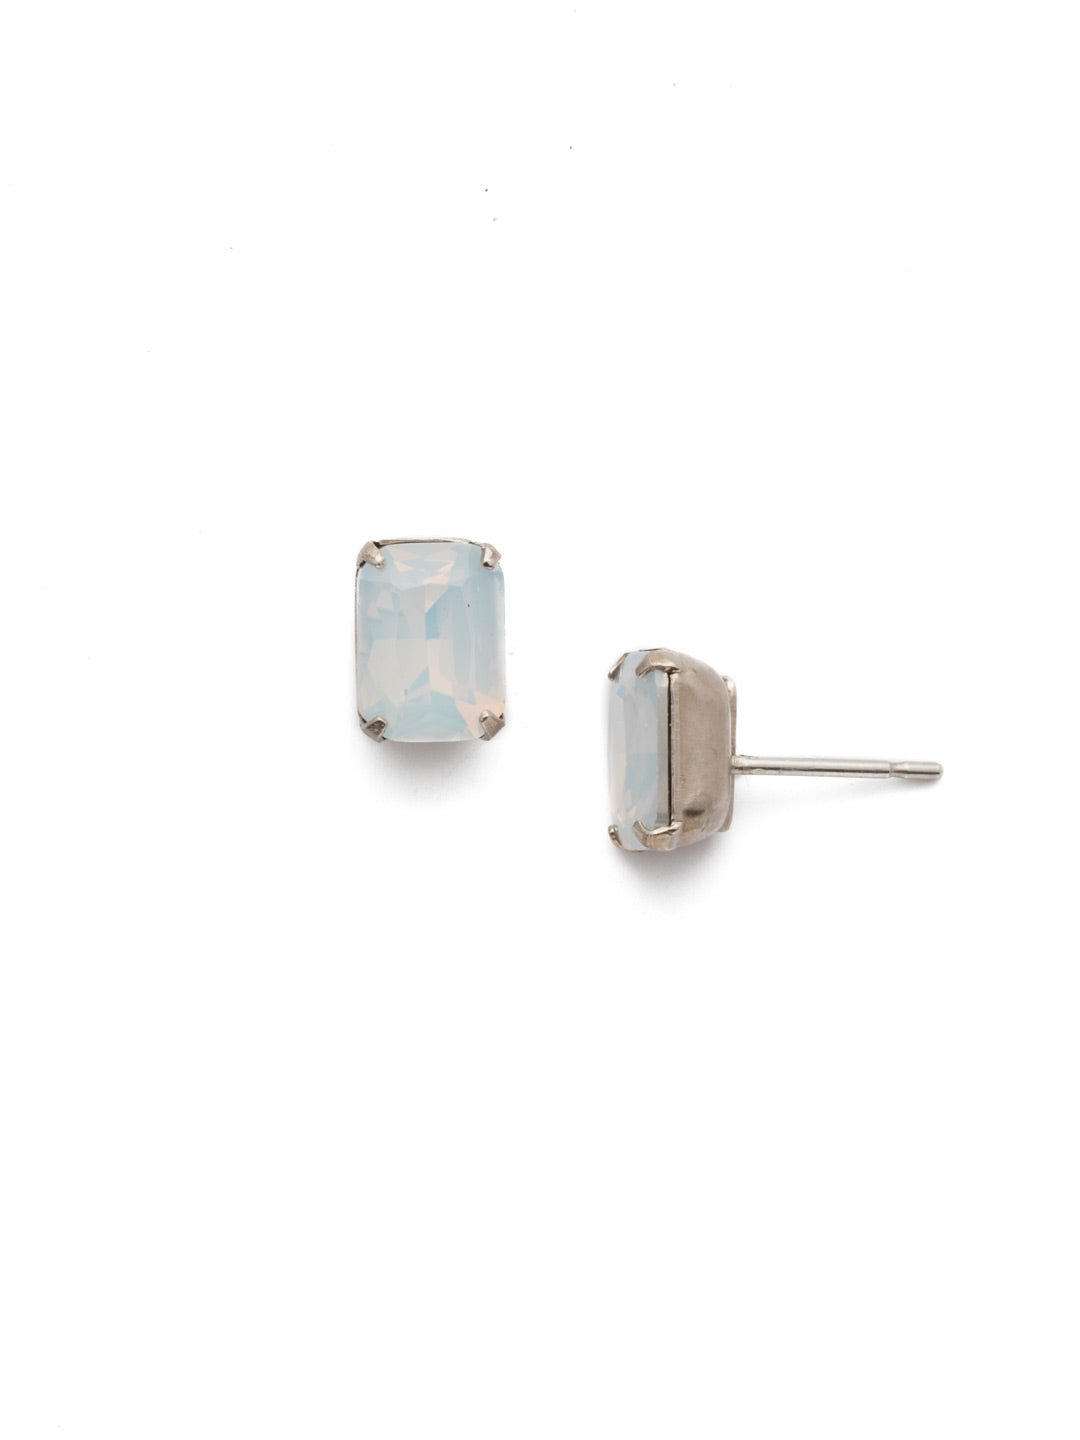 Mini Emerald Cut Stud Earring - Sorrelli Essentials - EBY42ASWO